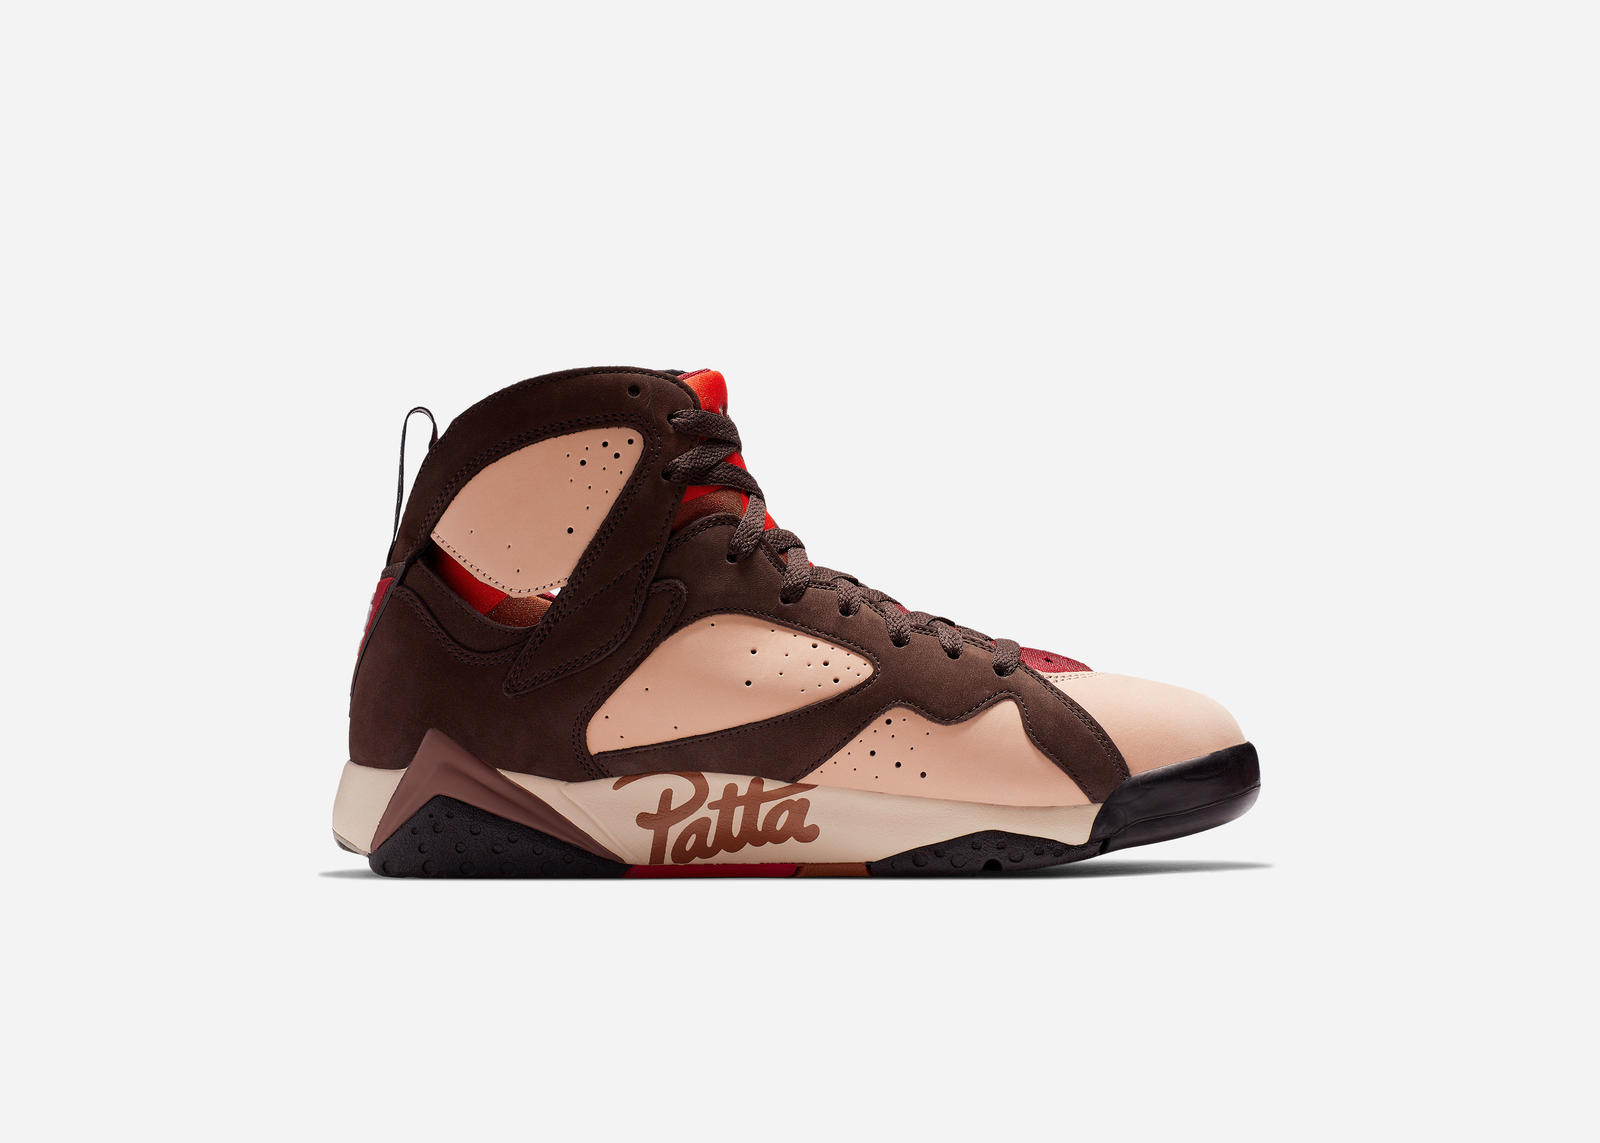 Air Jordan 7 Patta Official Images and Release Date 4